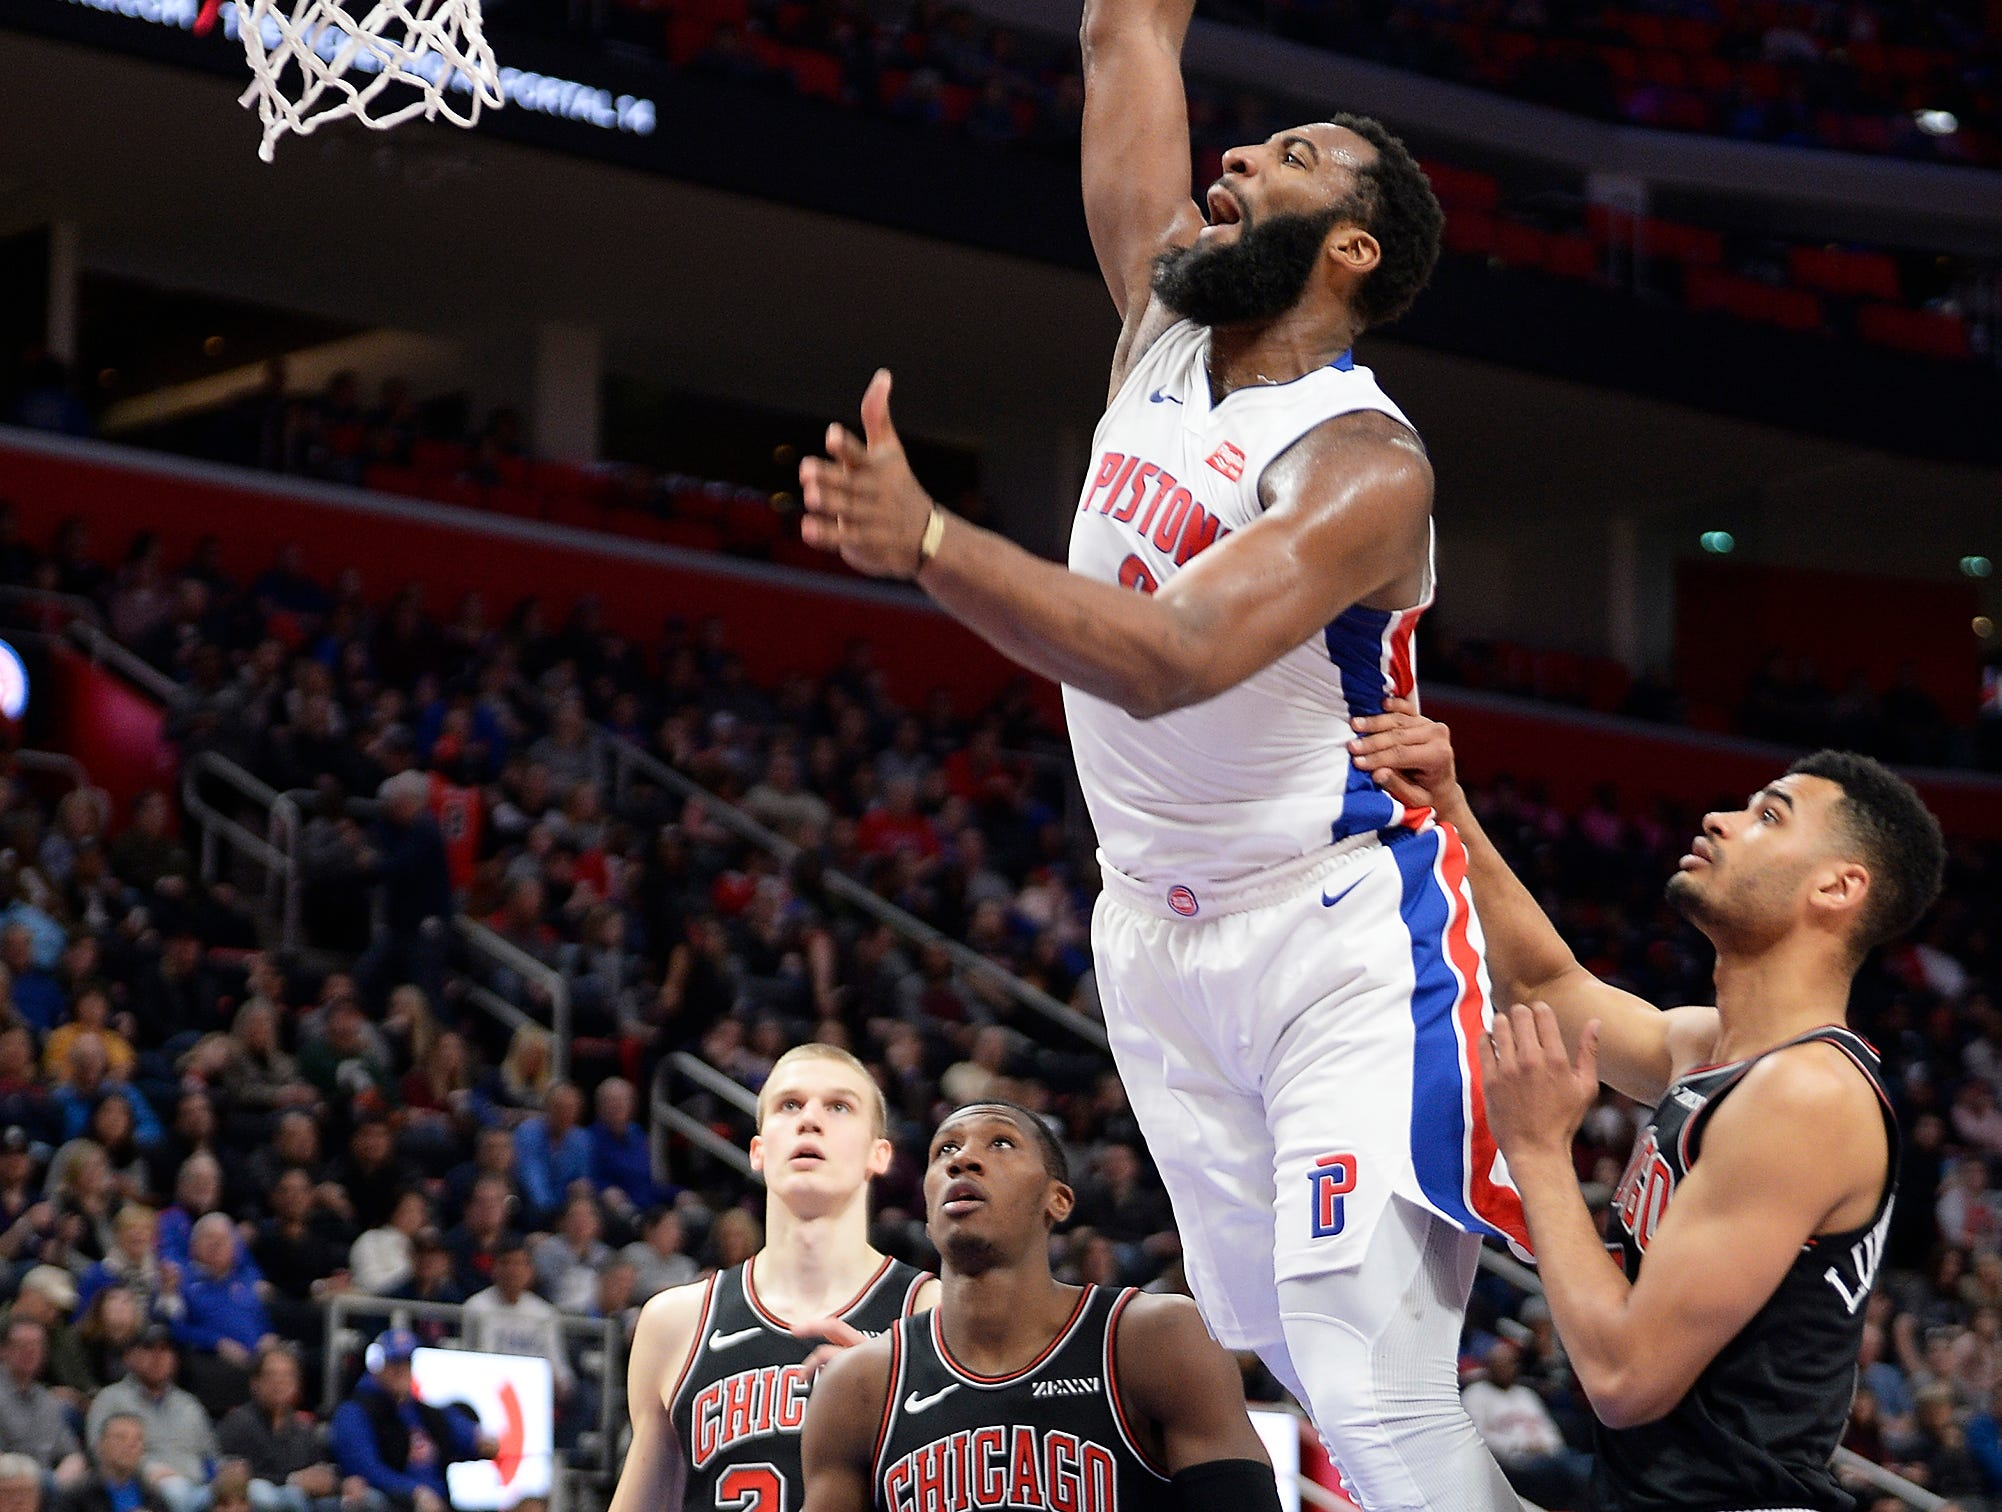 Pistons' Andre Drummond dunks over Bulls' l-r, Kris Dunn and Timothe Luwawu-Cabarrot in the third quarter. Drummond had 16 points and 15 rebounds.